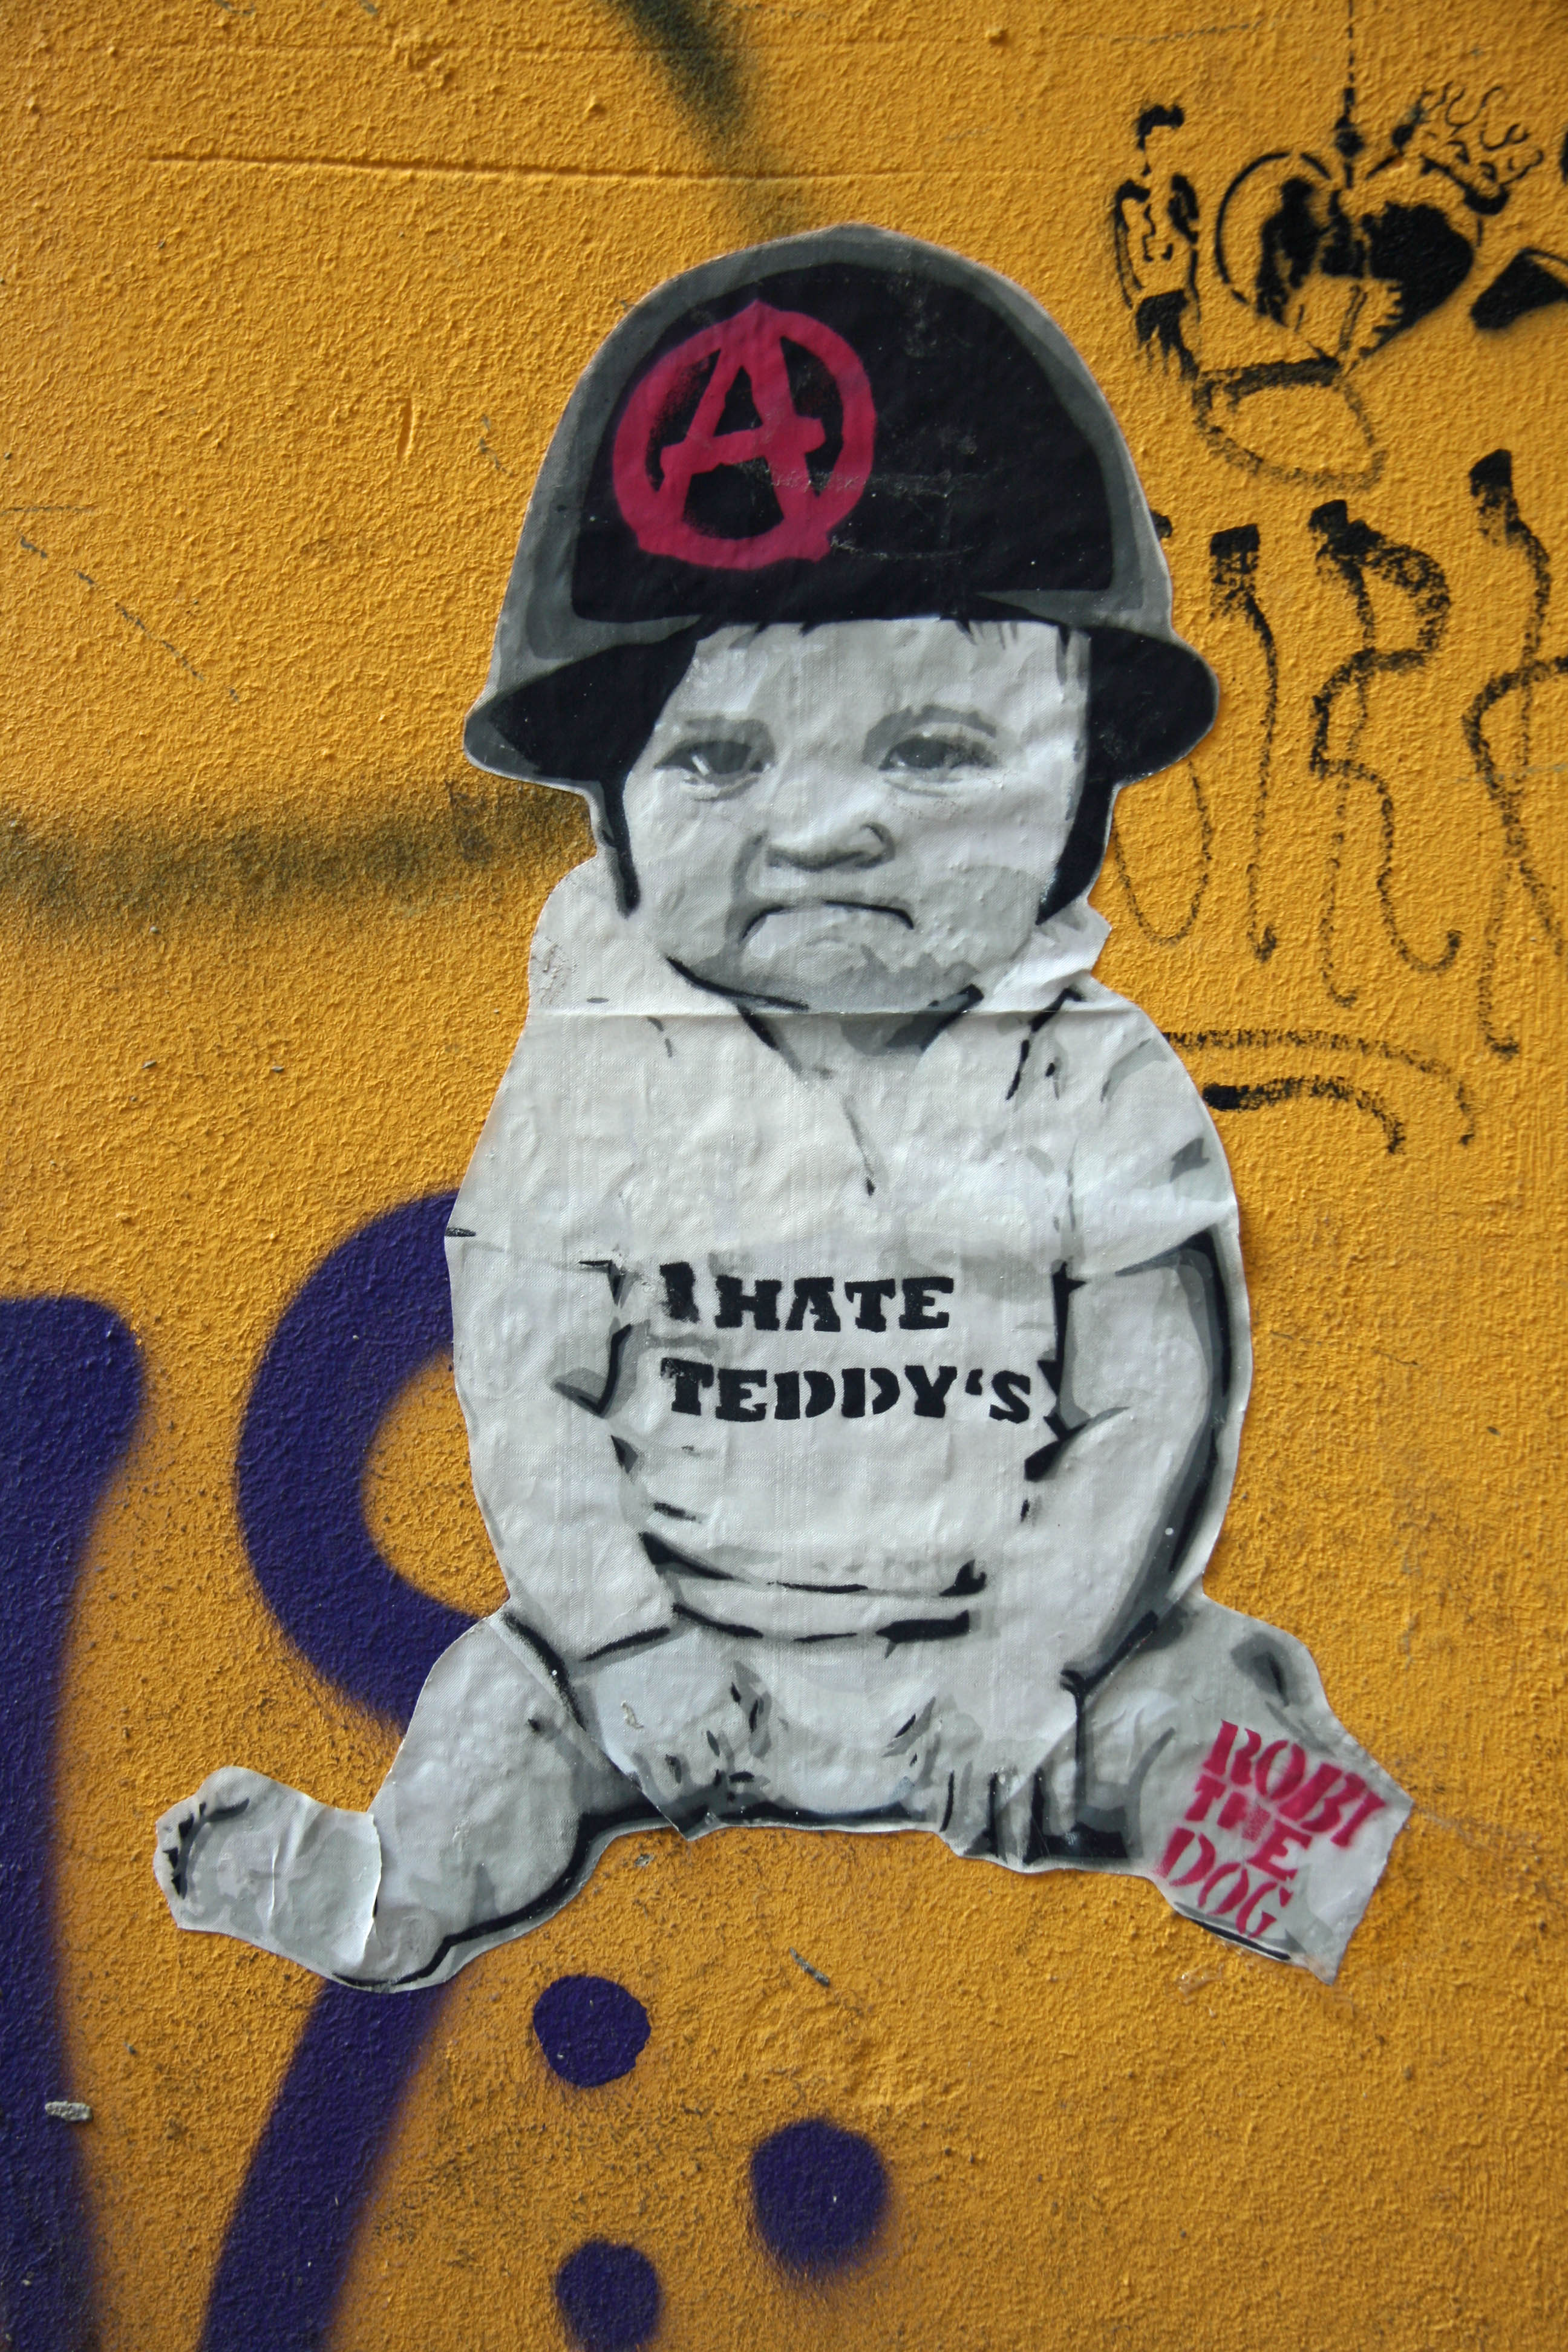 I Hate Teddy's: Street Art by Robi The Dog in Berlin